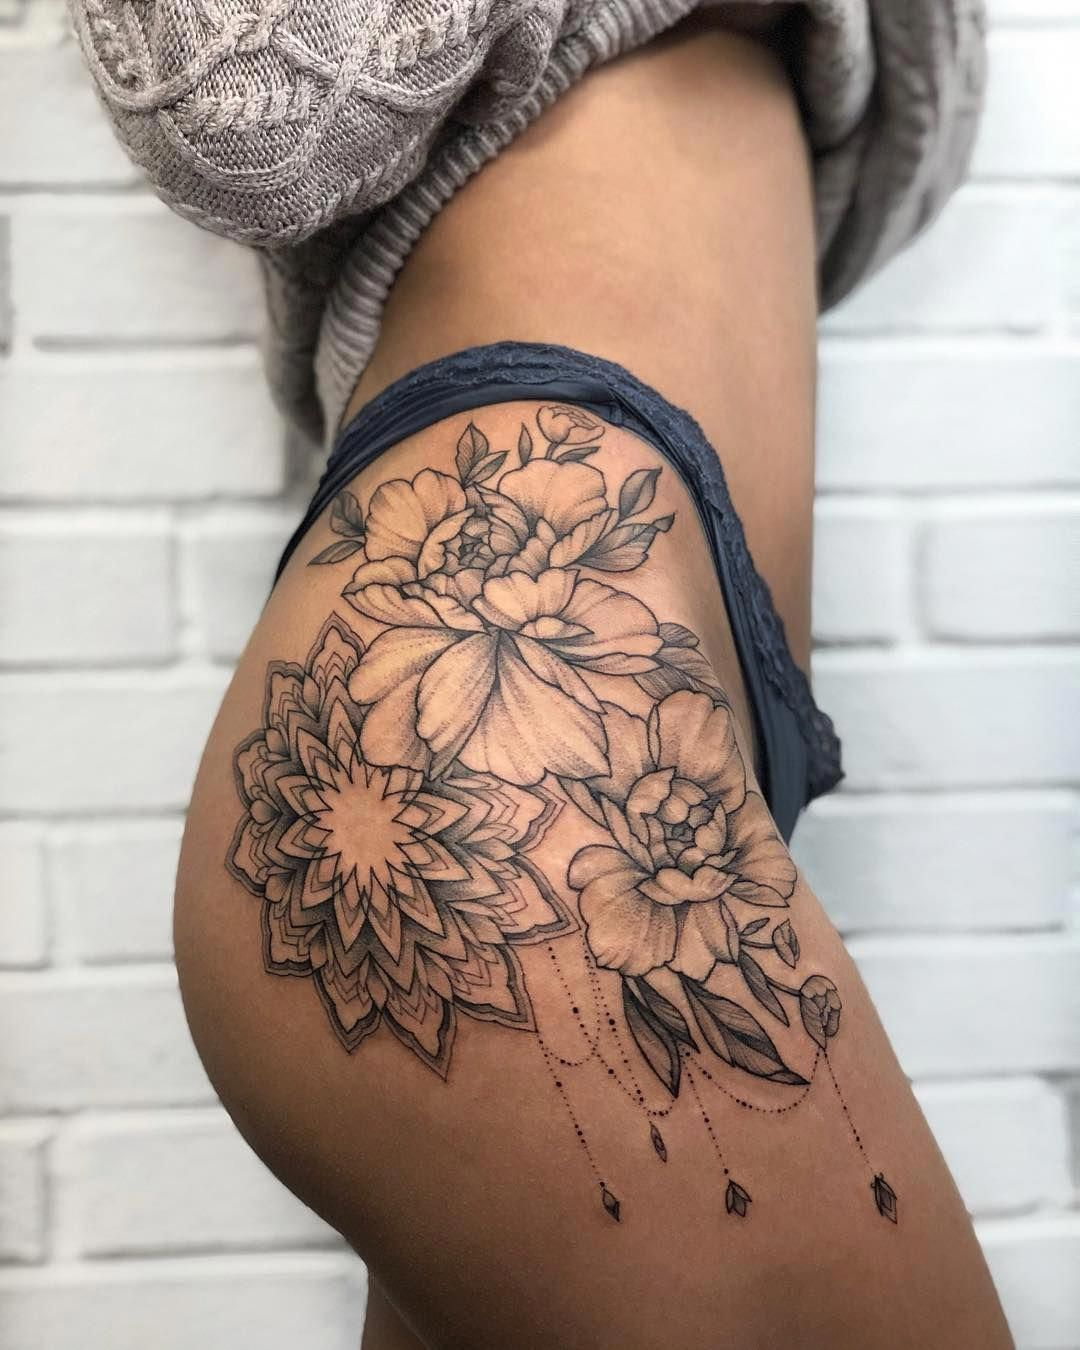 Pin By Marie On Tattoos Thigh Tattoos Women Hip Thigh Tattoos Floral Thigh Tattoos